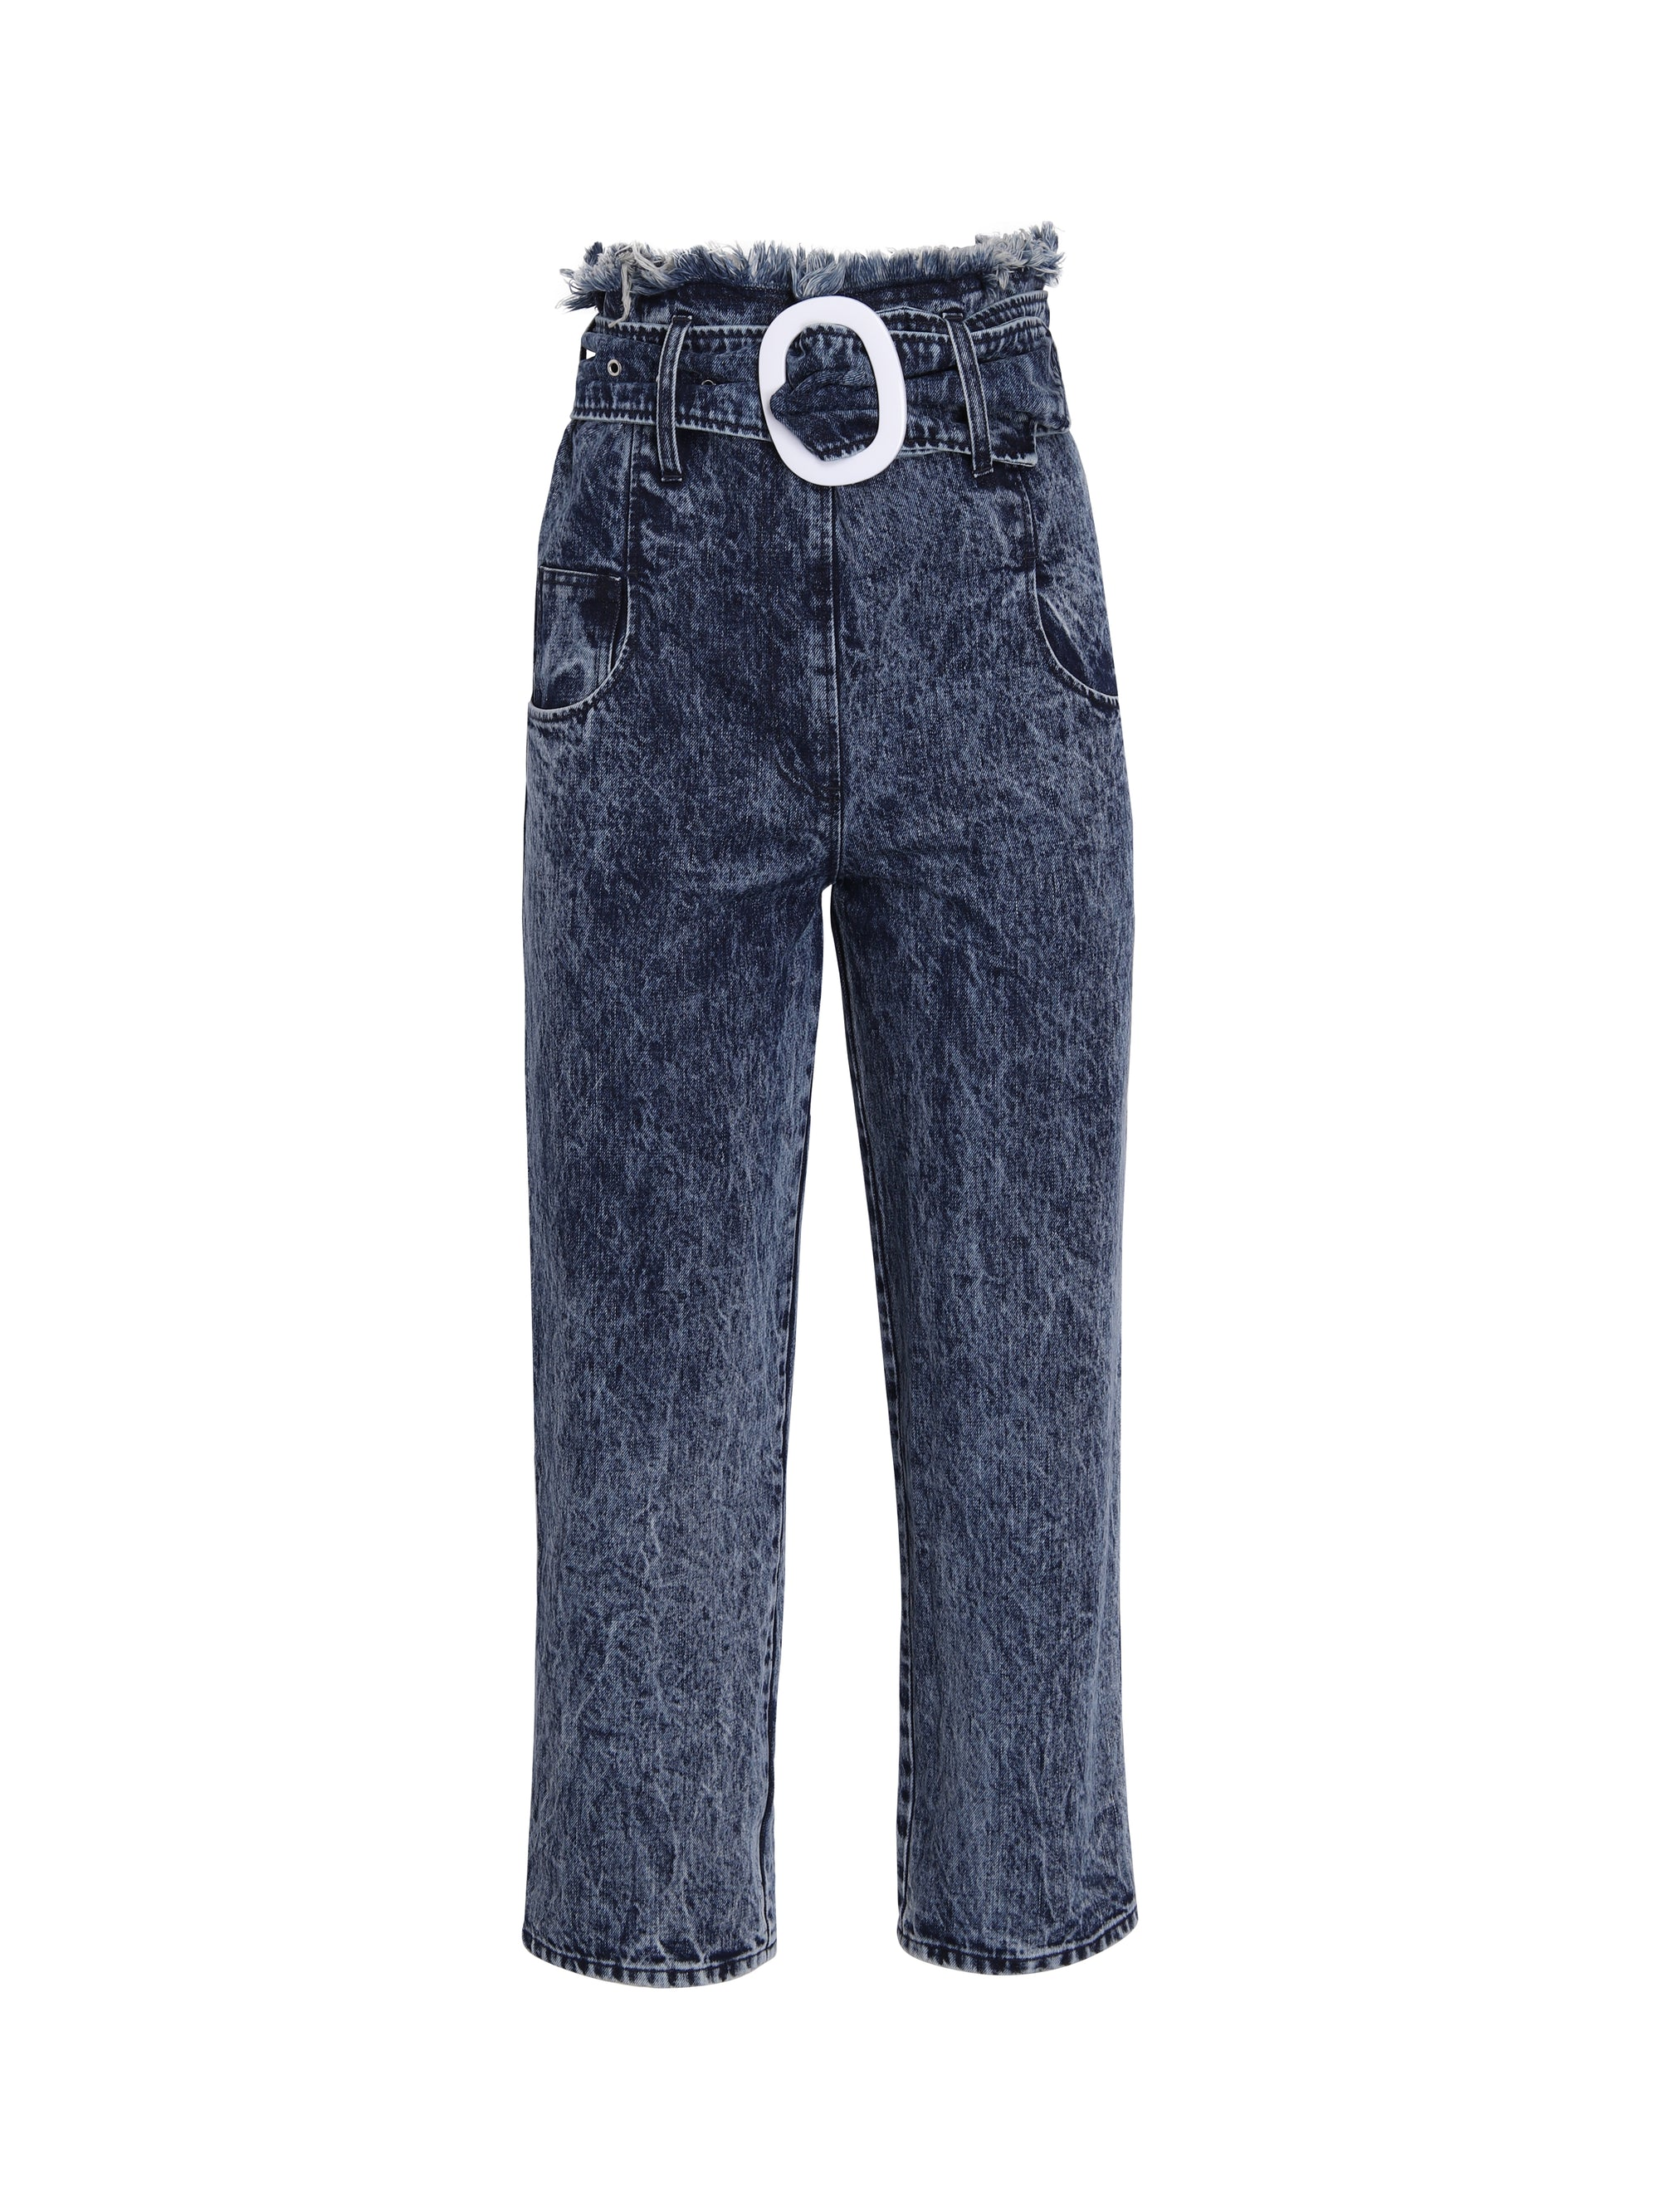 Jean Ziggy - Denim Snow Washed